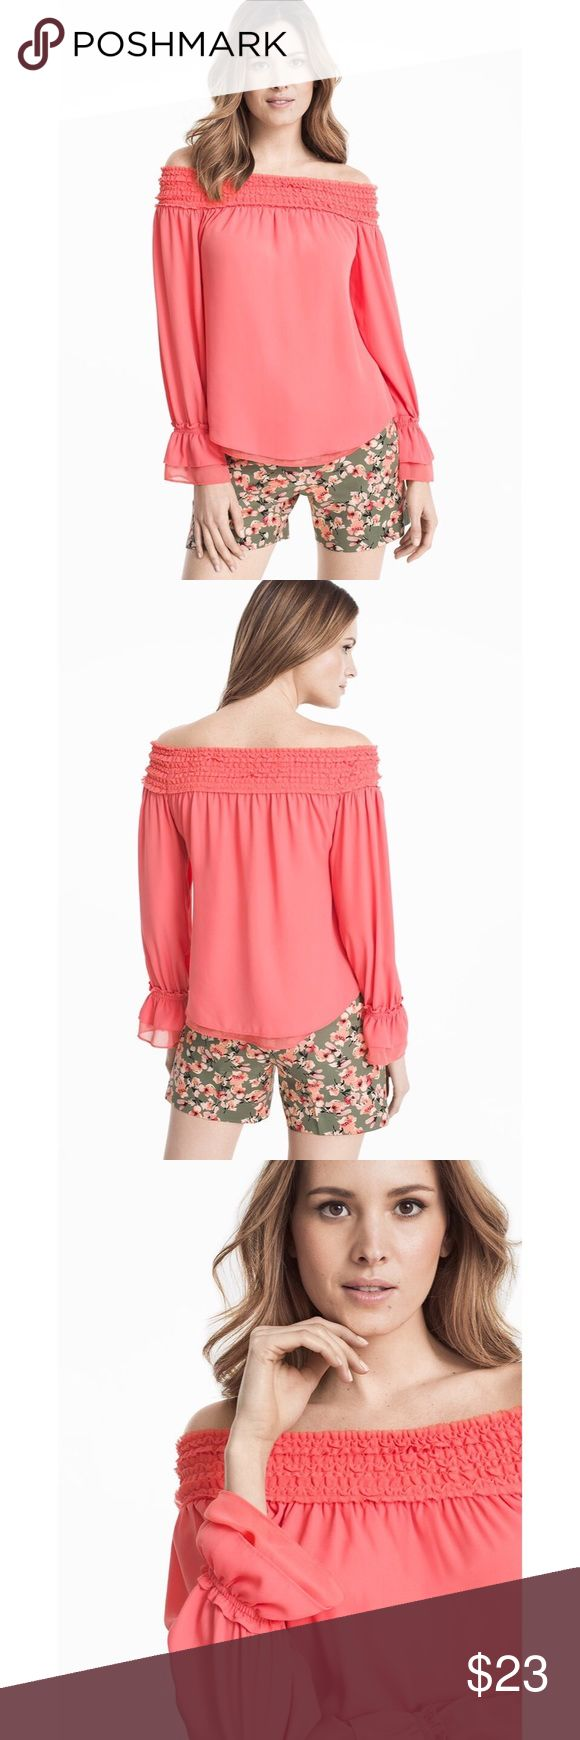 White House Black Market Off The Shoulder Blouse This off-the-shoulder blouse screams femininity thanks to the smocked neckline and pretty bell sleeves. Pair with floral print shorts or jeans and a pair of canvas slip ons for a fresh spin on your off-duty style.                                                       🛍Features: Bell Sleeves, Off The Shoulder  🛍Coloring: Coral  🛍Fit: Small  🛍Condition: New With Tags    🛍Fabric content: 100% Polyester    🛍Make an offer or bundle with other…